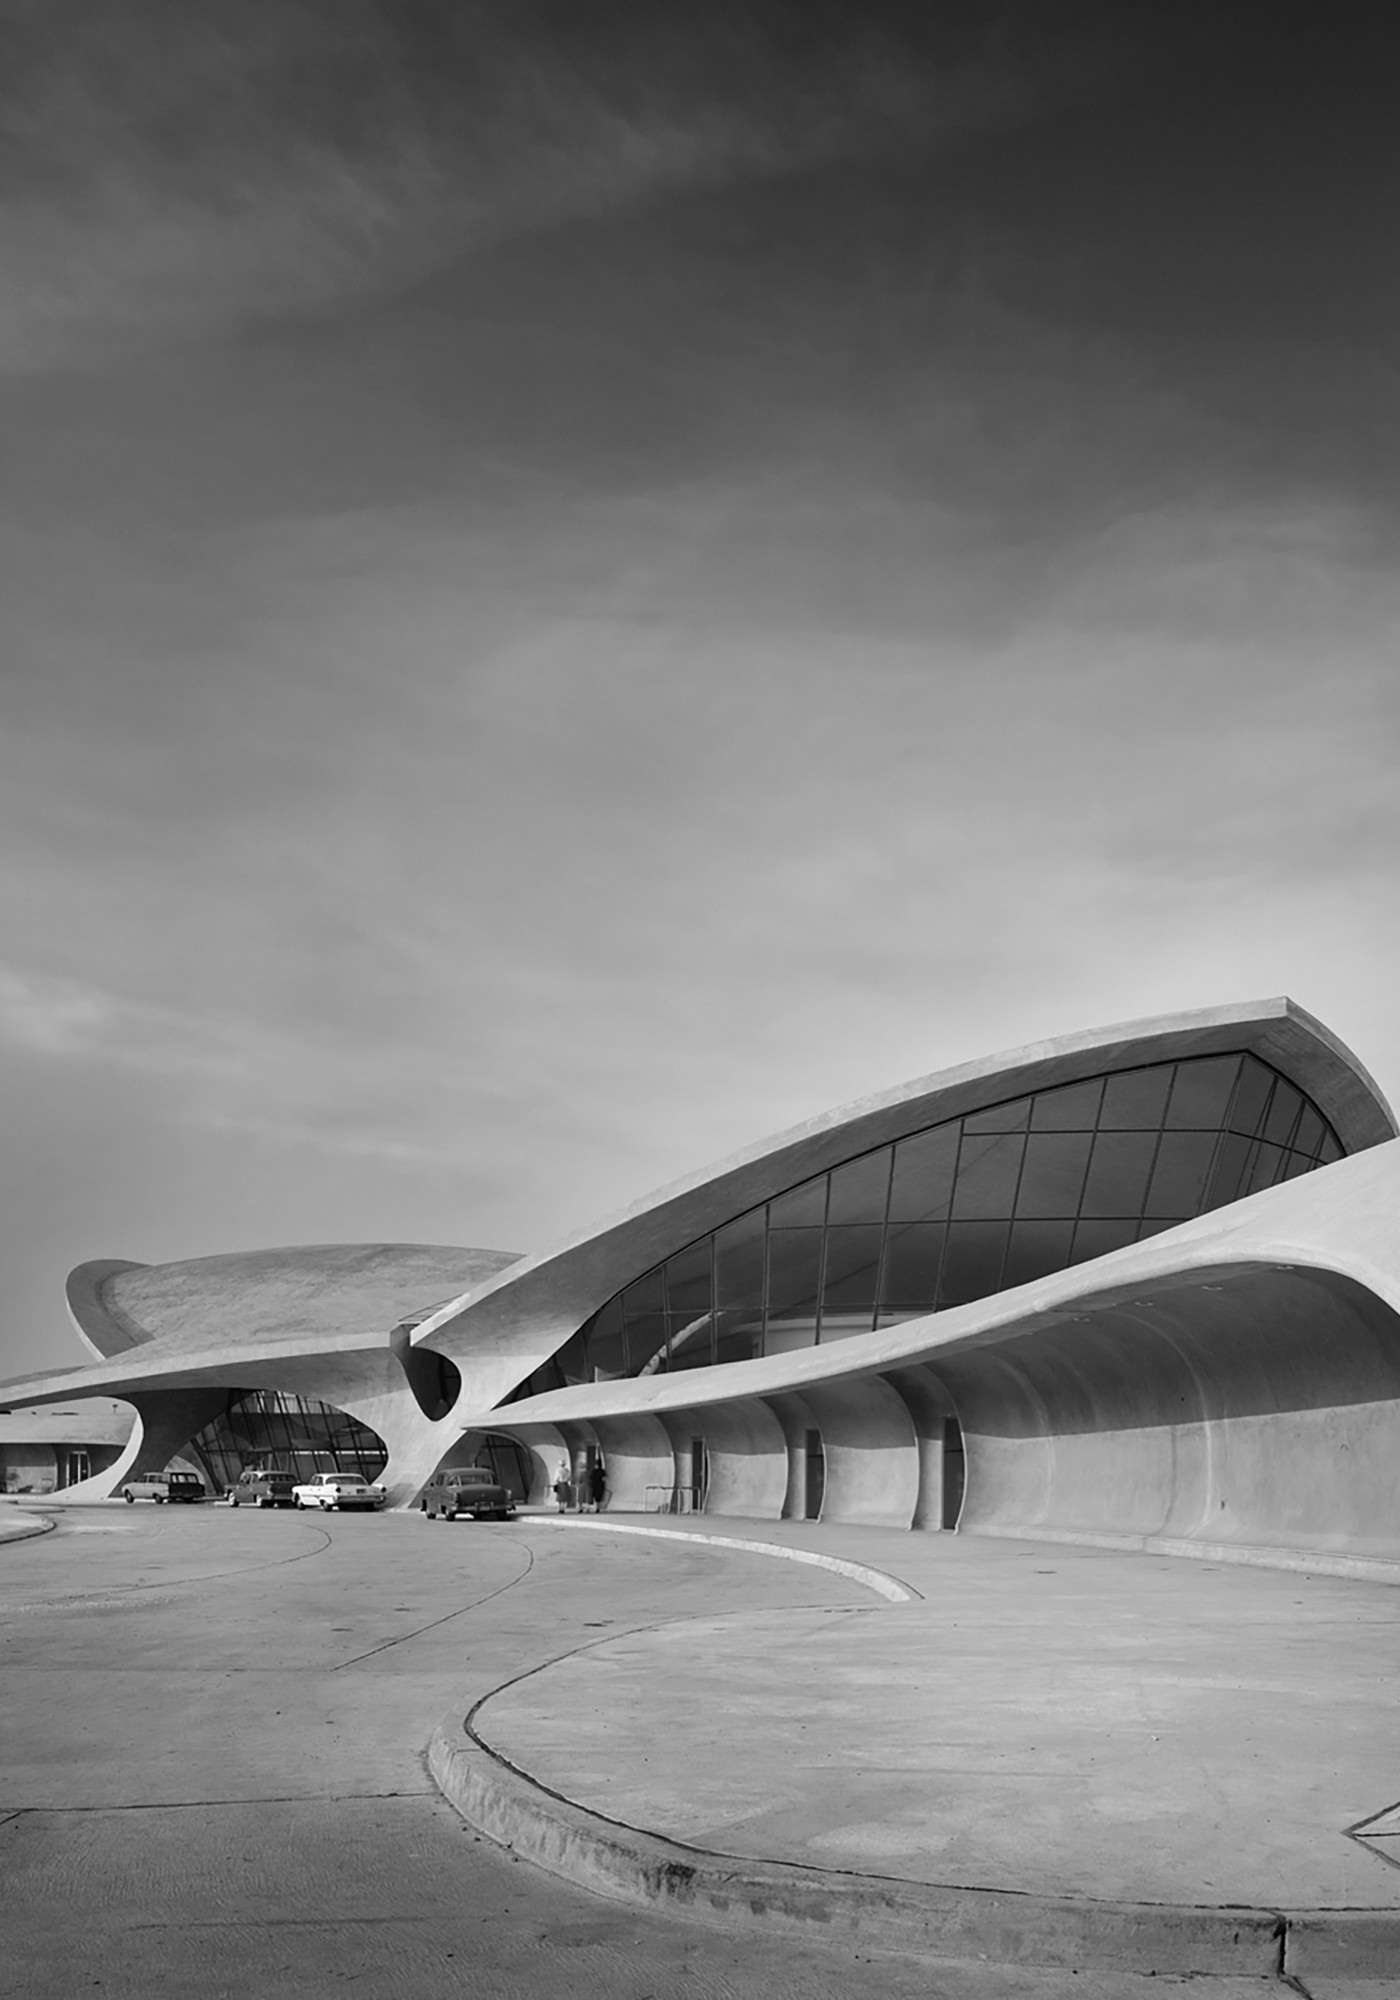 TWA Hotel New York JFK Airport TWA Flight Center Archive Vue Ensemble Ezra Stoller